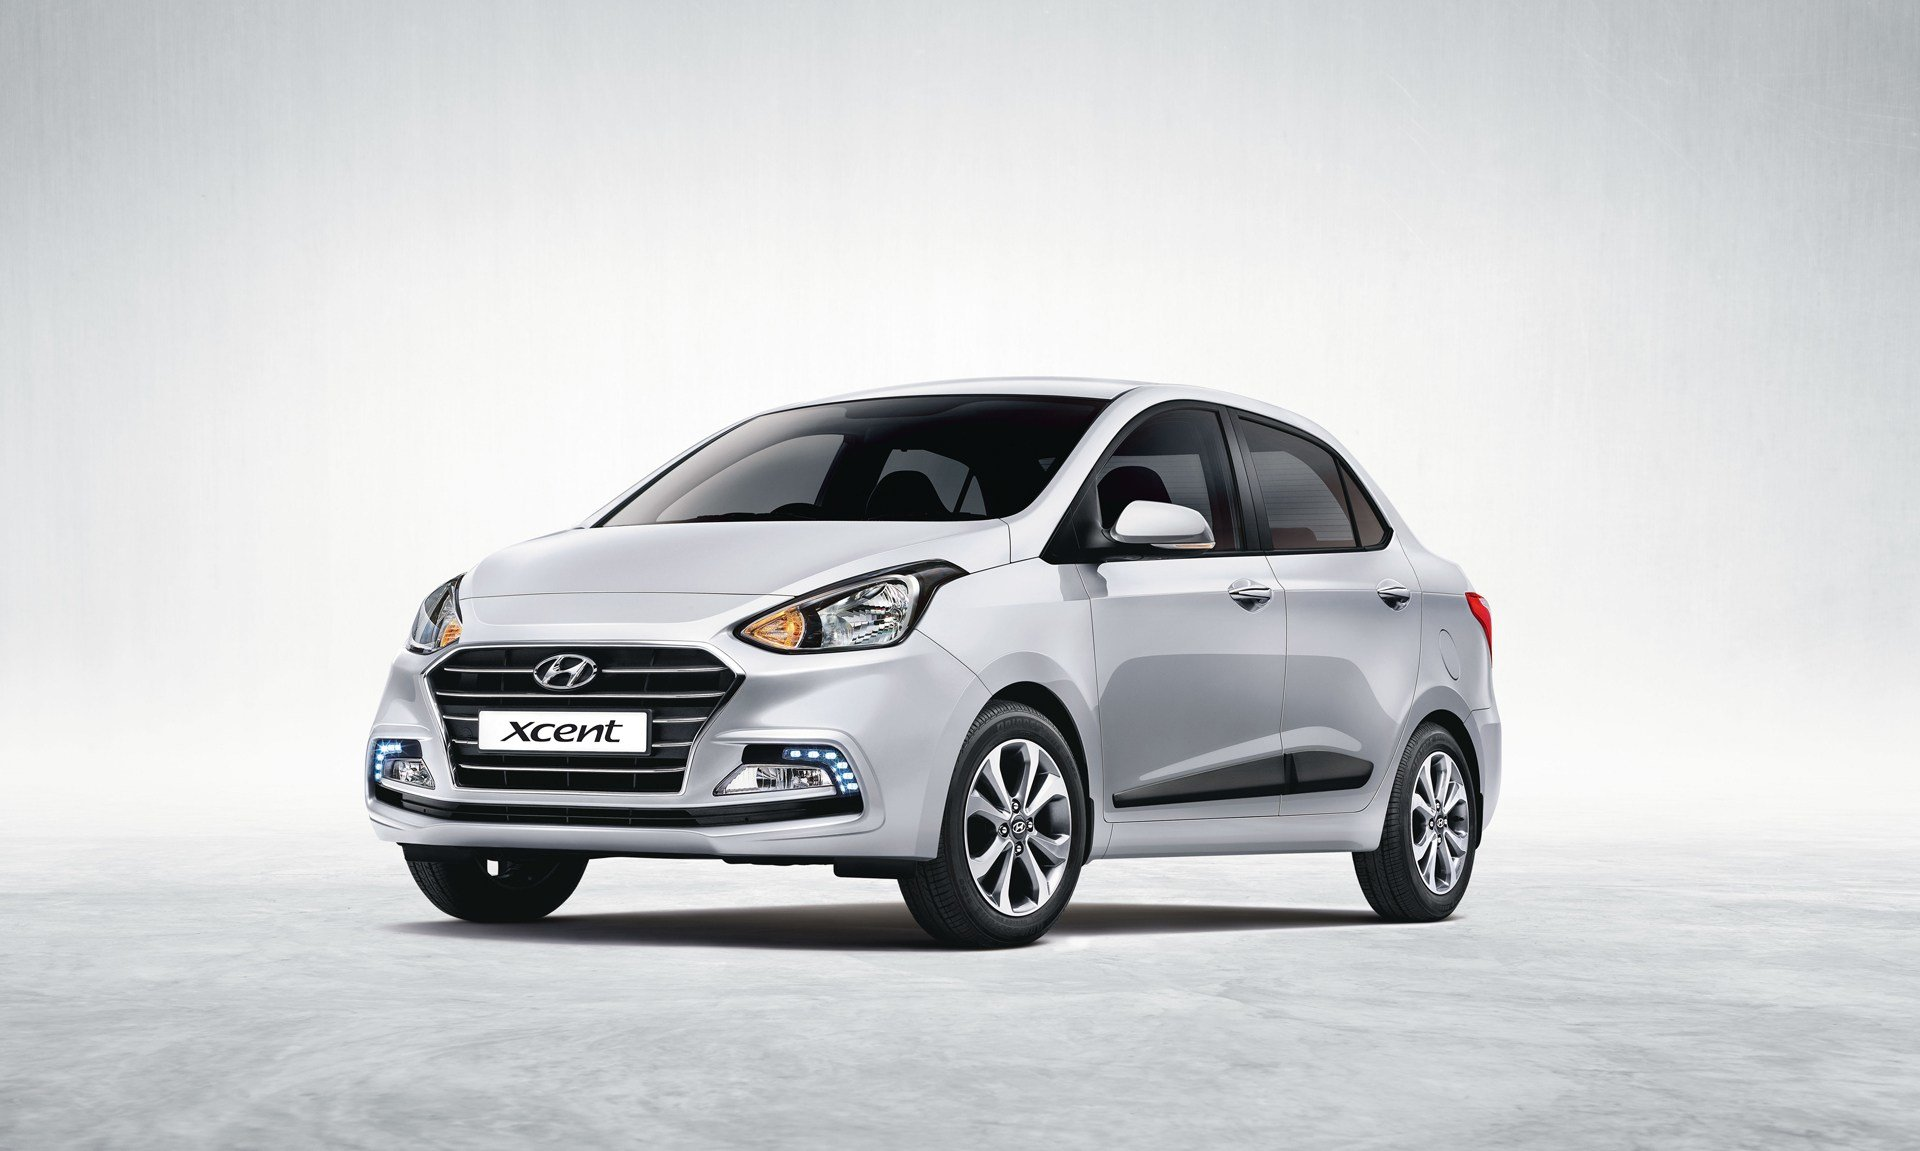 Latest Hyundai Xcent 2017 Reviews Price Specifications Mileage Free Download